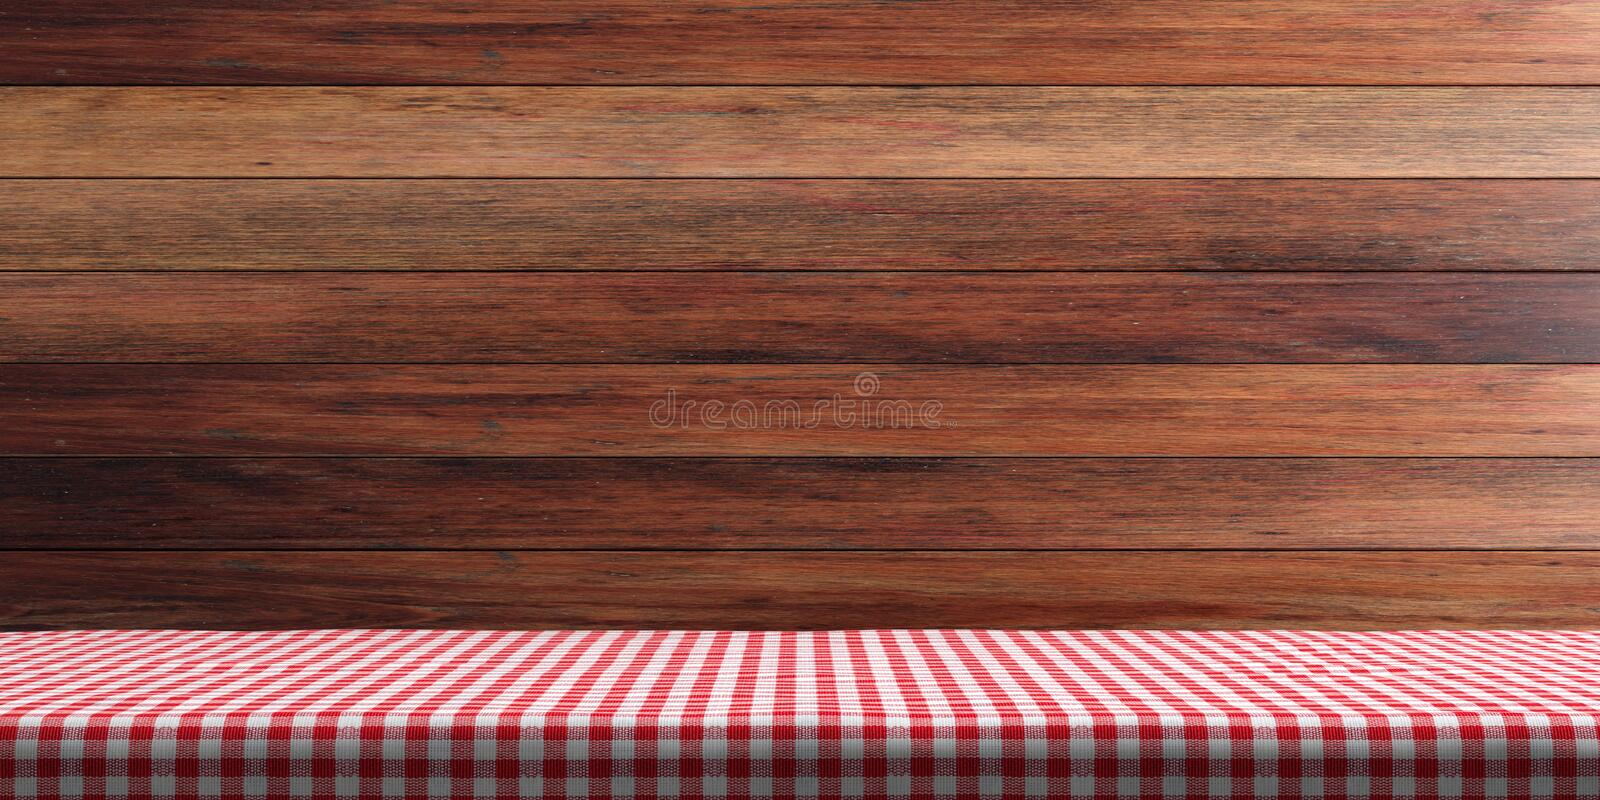 Table covered with red tablecloth on wooden wall background, copy space. 3d illustration royalty free illustration